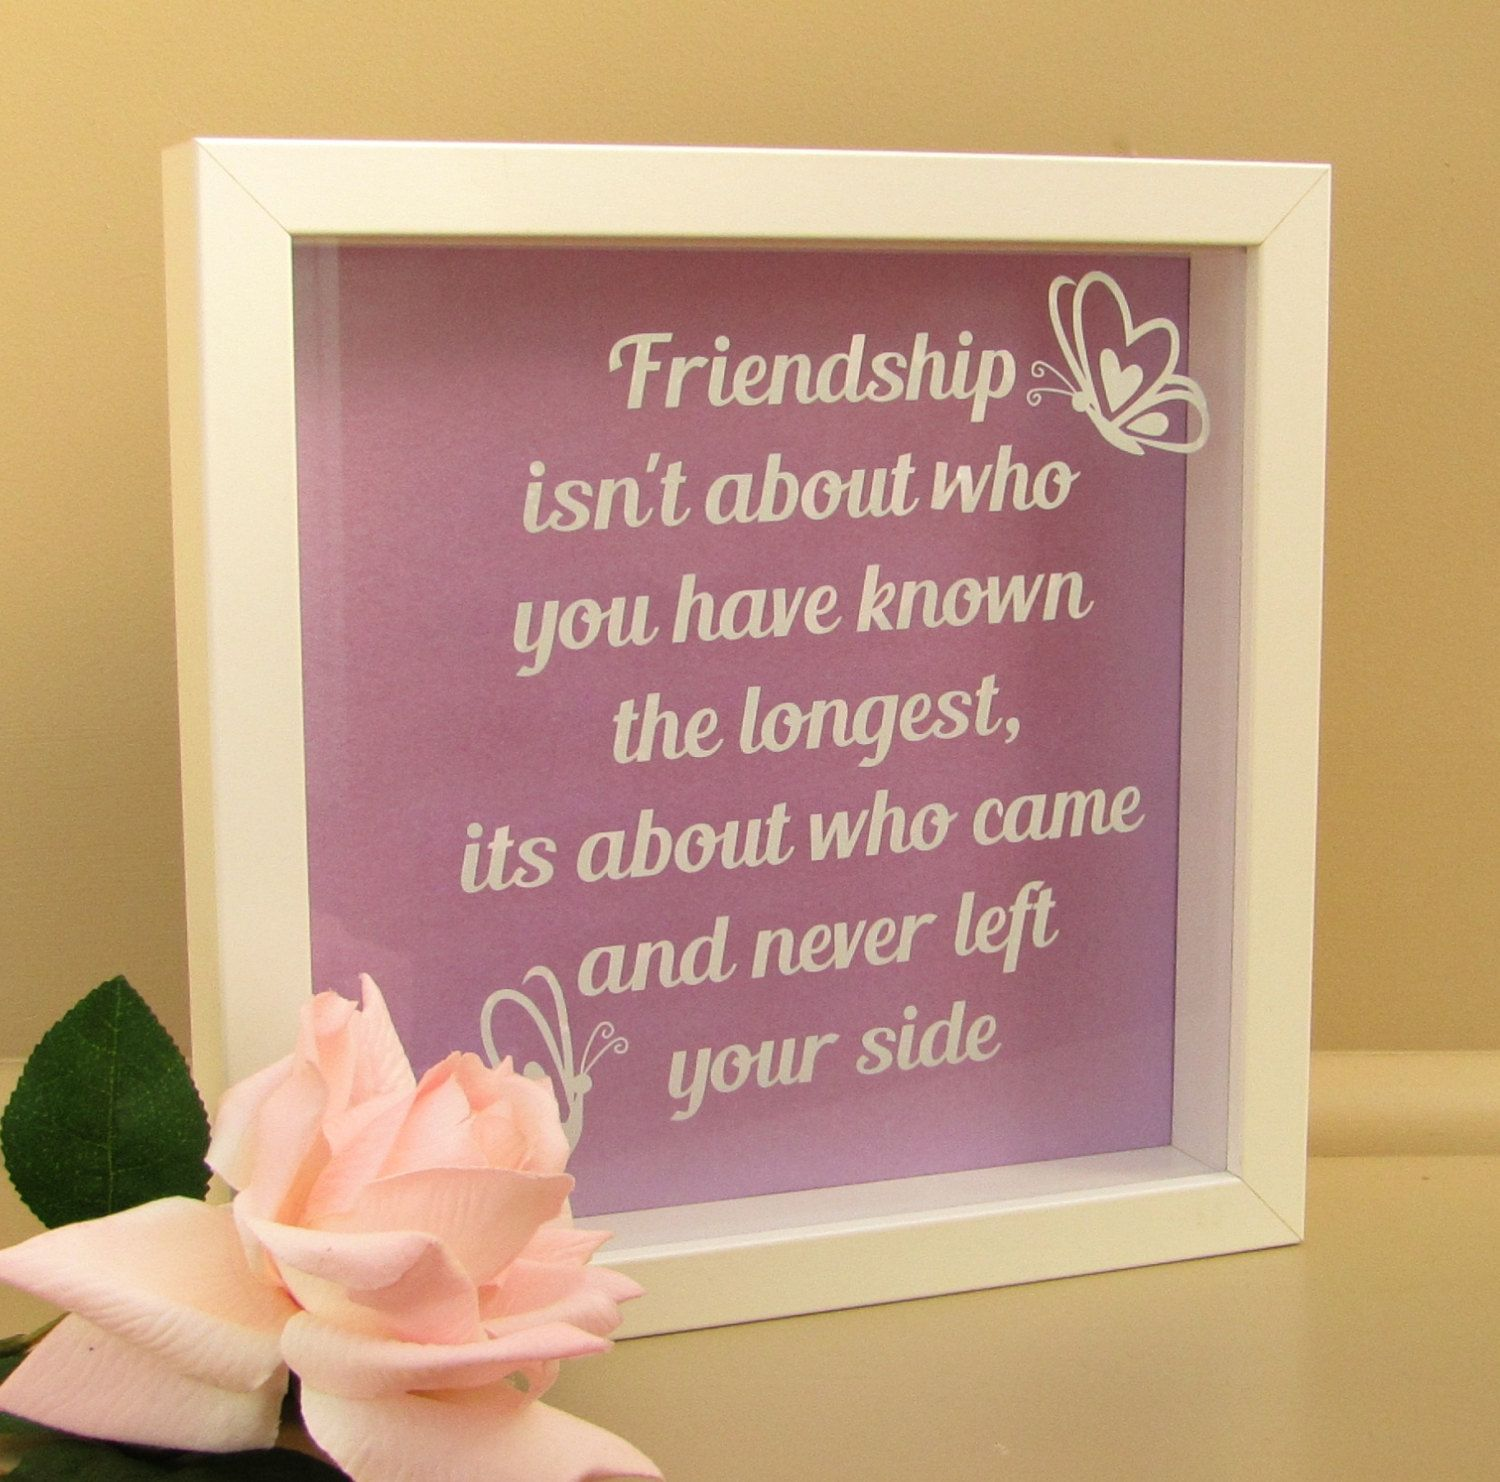 Quotes About Lasting Friendship Friendship Quote Box Frame With Butterflies  White.